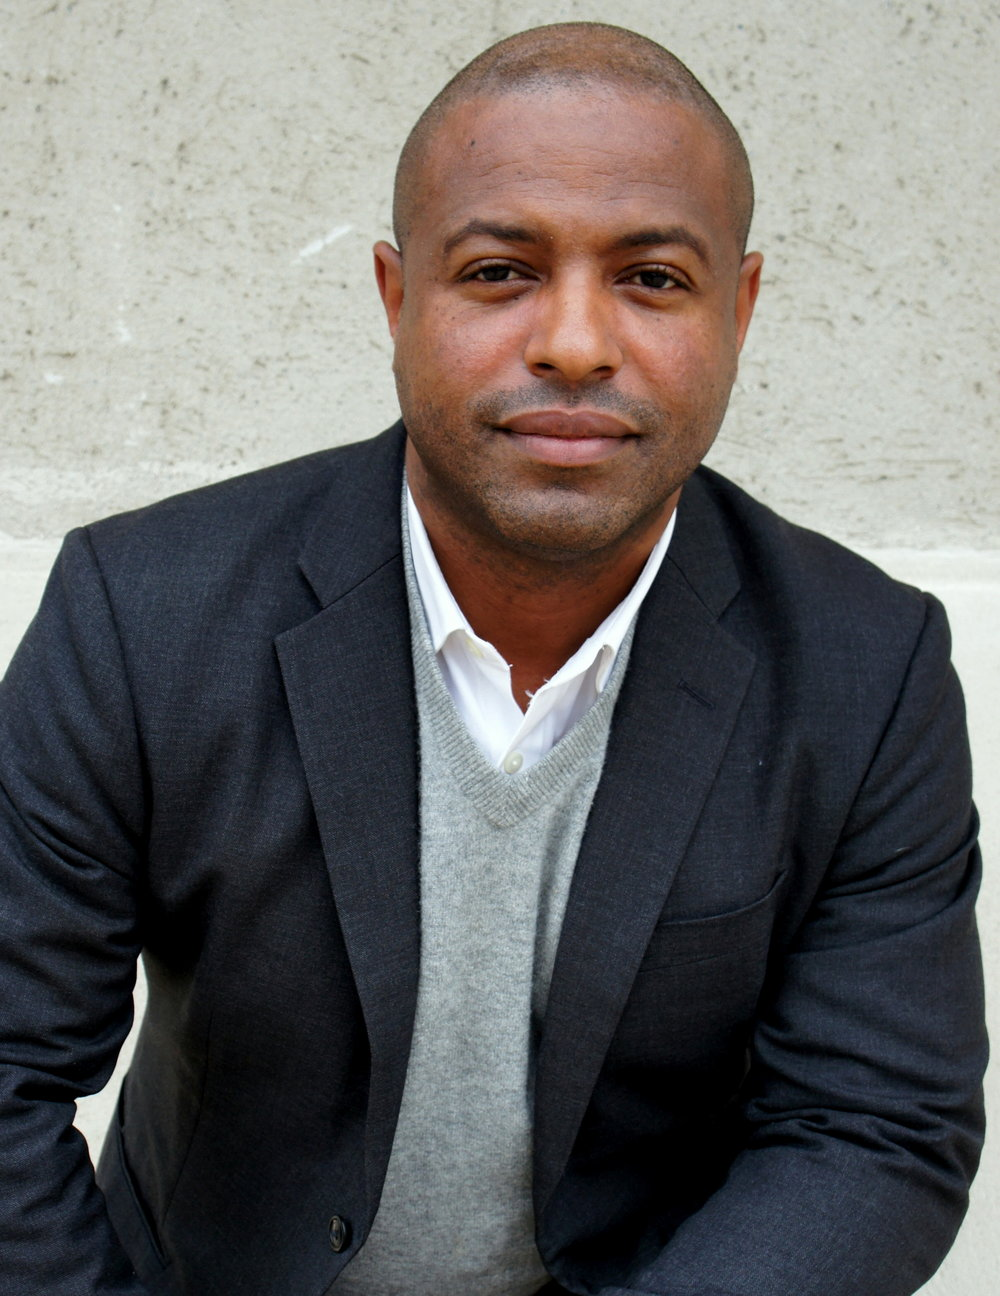 Malo Hutson    @MaloAndreHutson   Associate Professor and Director of the Urban Community and Health Equity Lab at Columbia University